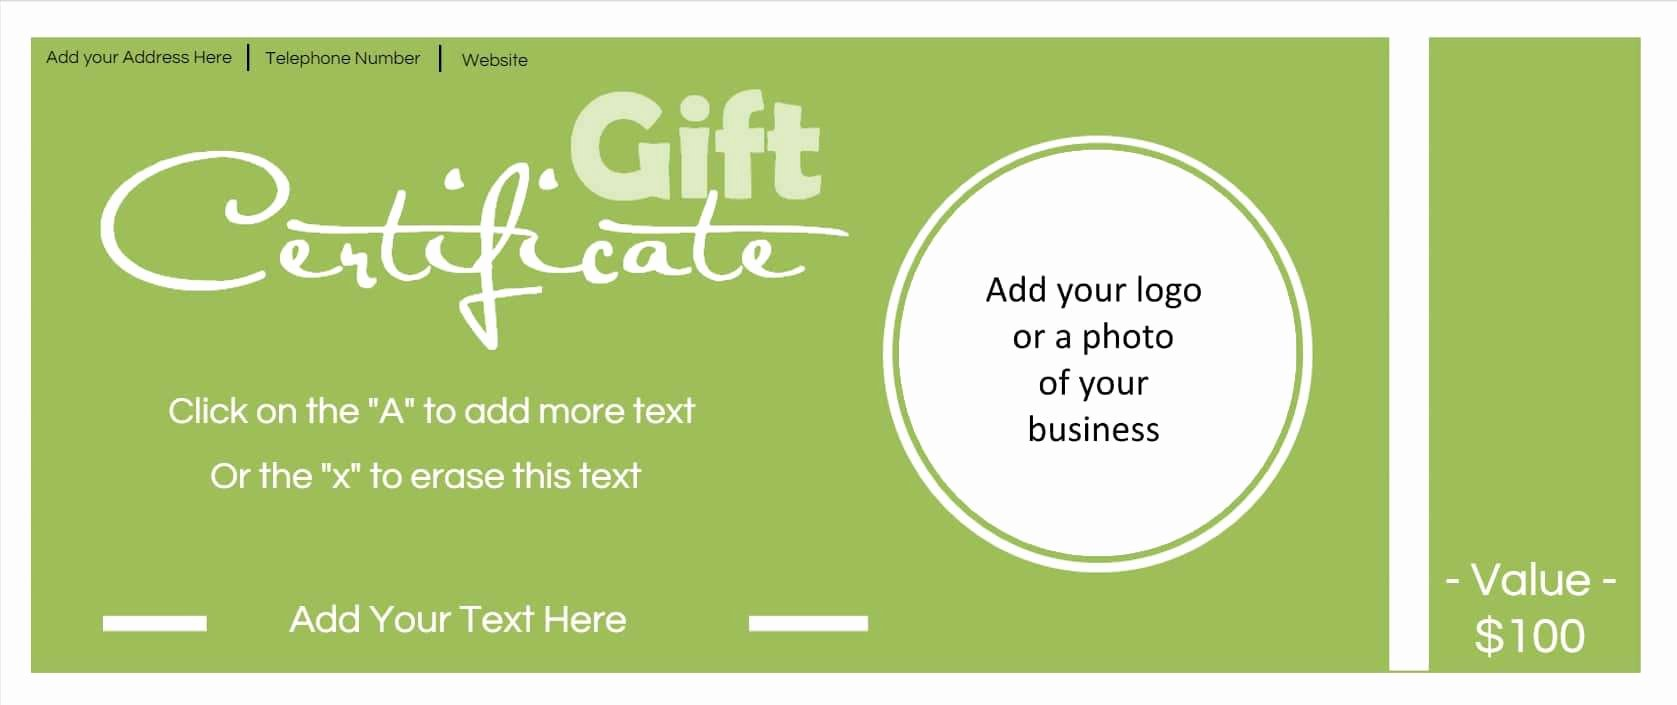 Samples Of Gift Certificate New Gift Certificate Template with Logo